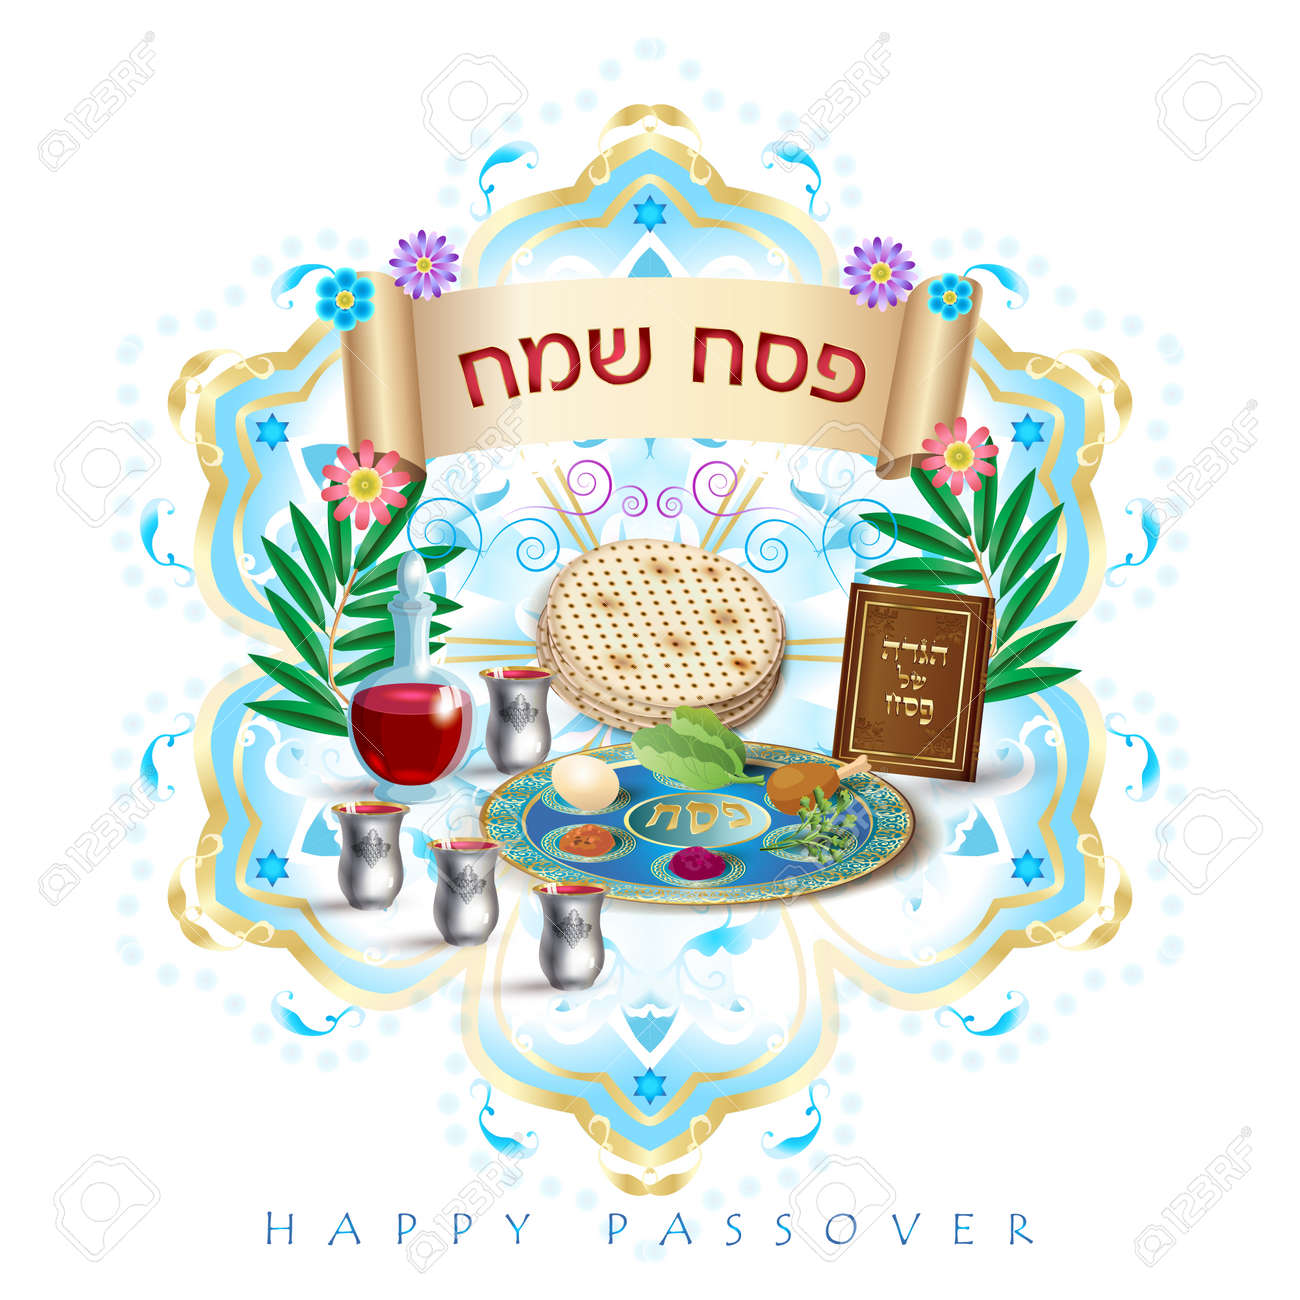 Happy passover holiday translate from hebrew lettering greeting happy passover holiday translate from hebrew lettering greeting card decorative vintage floral frame m4hsunfo Choice Image